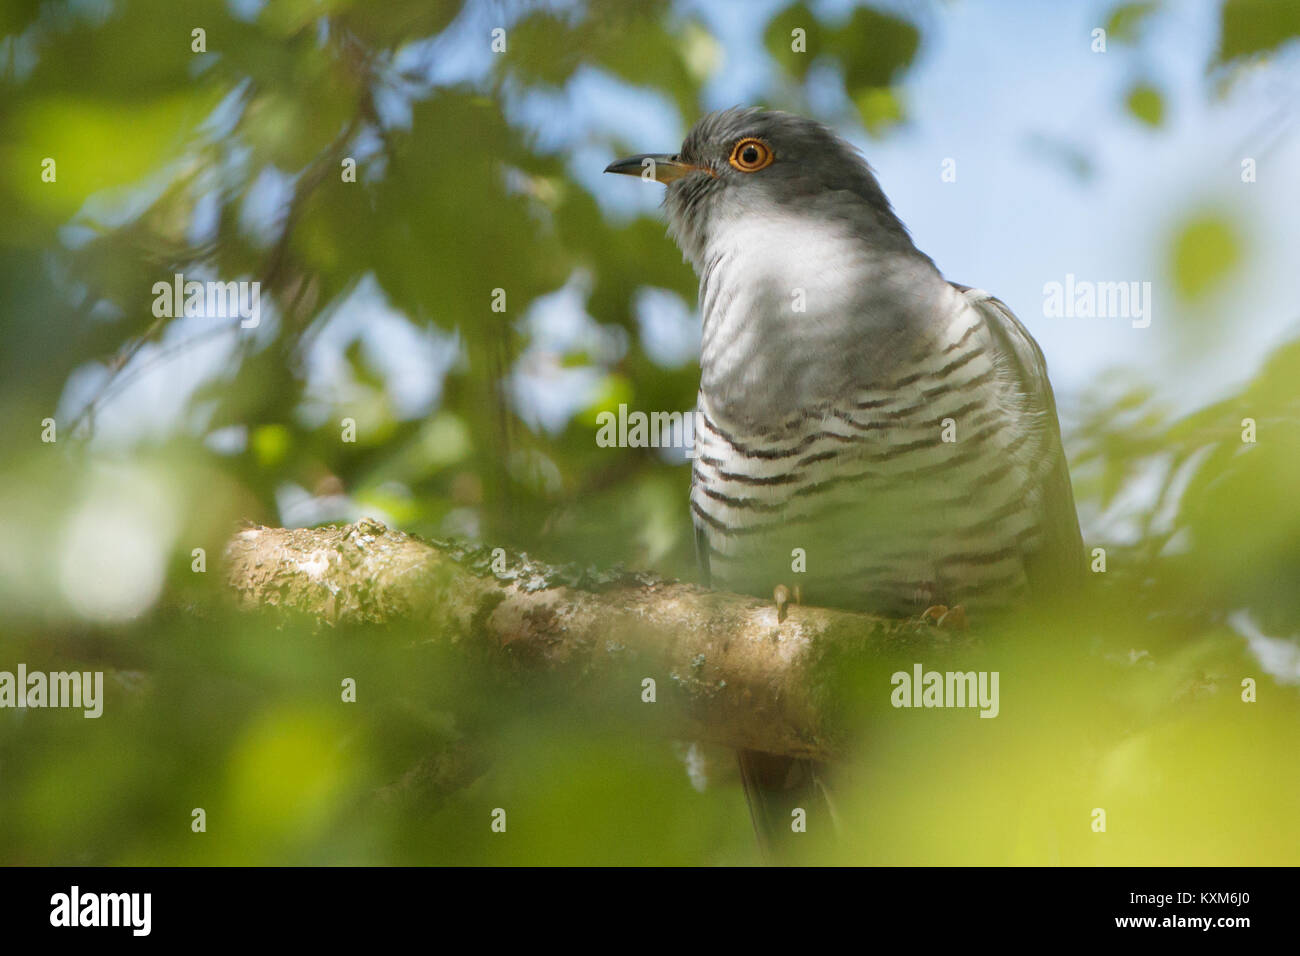 Cuckoo (Cuculus canorus) perched in tree. Surrey, UK. - Stock Image